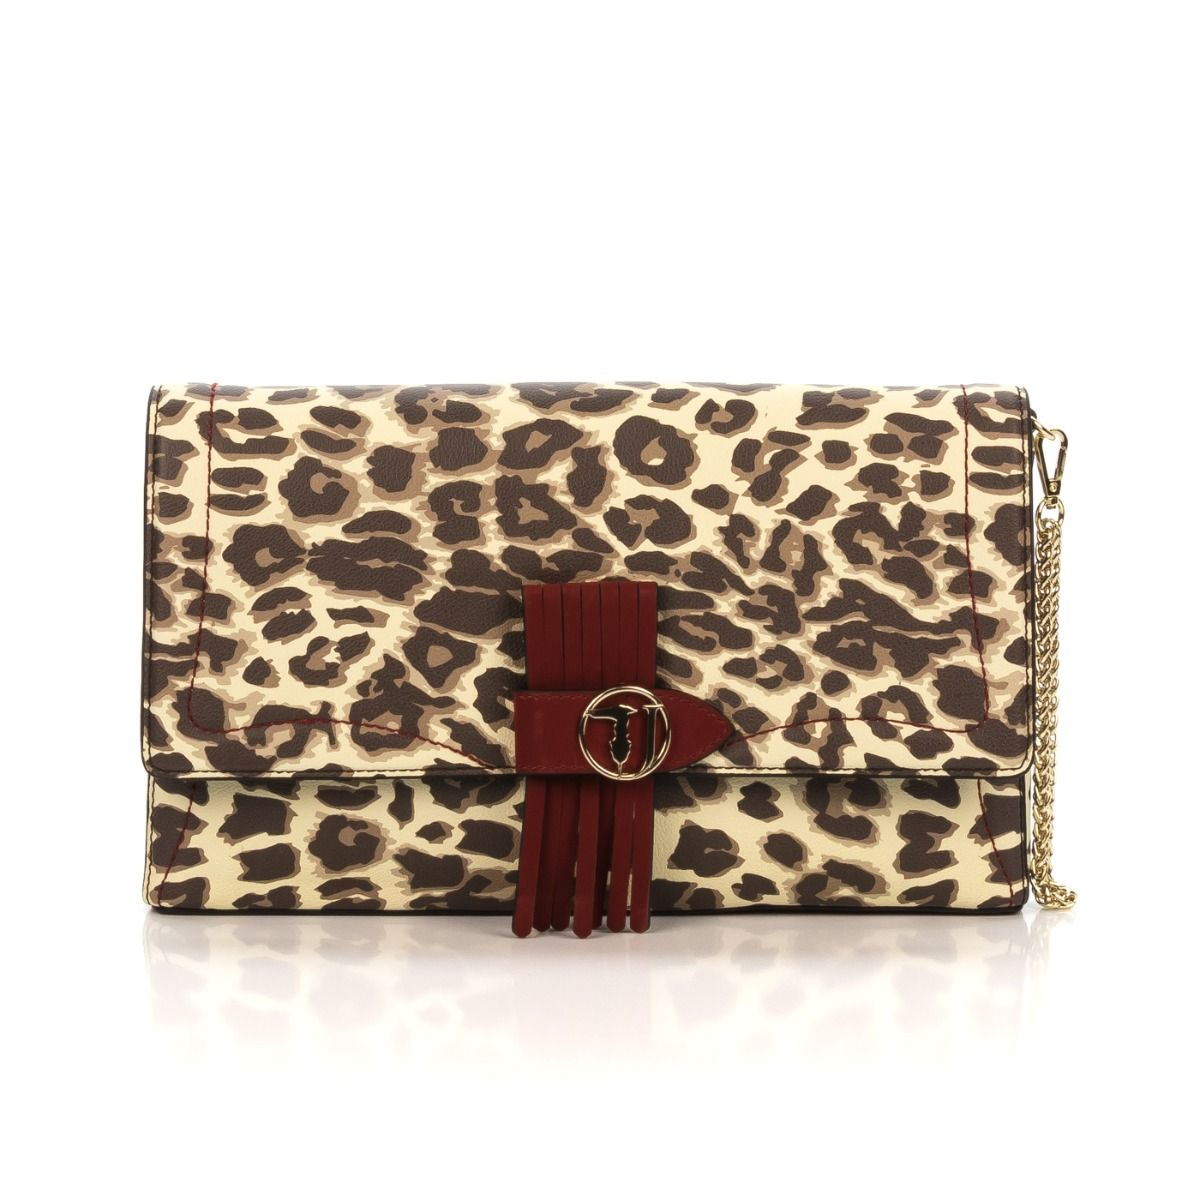 82b878c976 Pochette donna|TRUSSARDI JEANS 75B0051798-R150 in similpelle animalier|Shop  online|Shoe Center